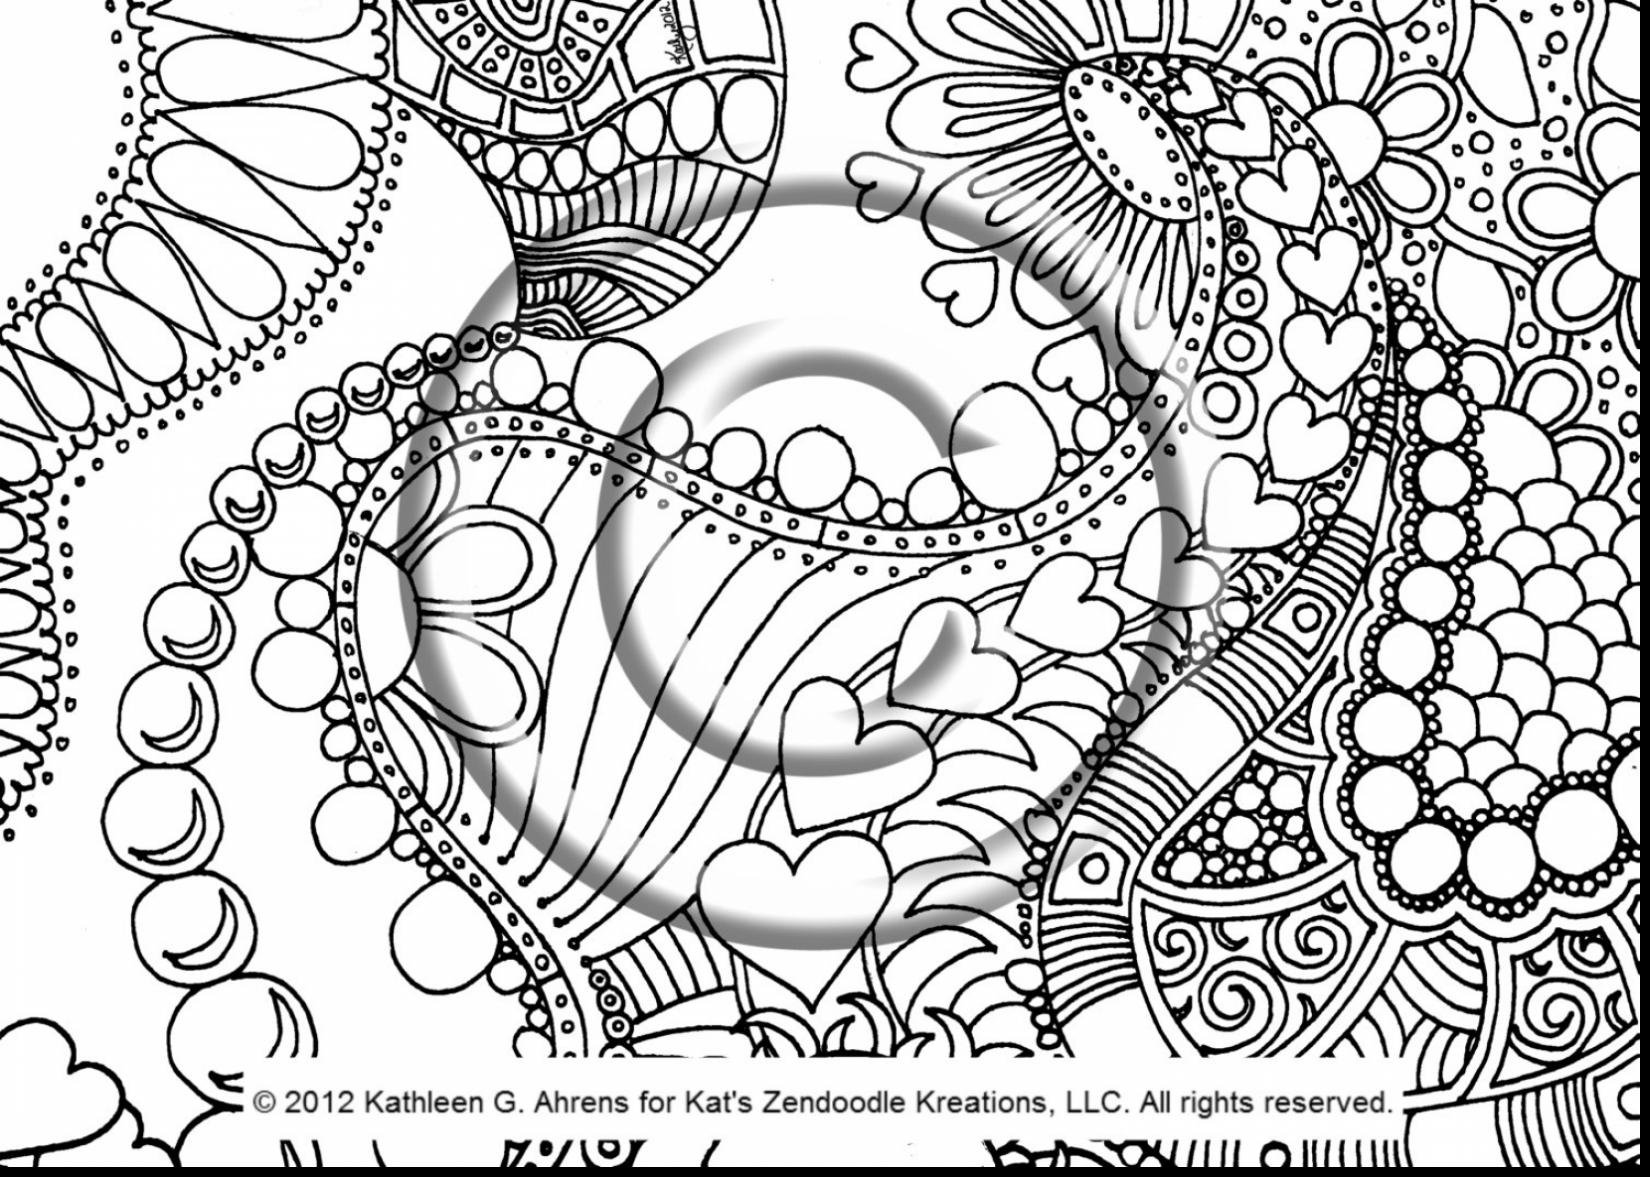 Psychedelic Coloring Pages At Getdrawings Com Free For Personal